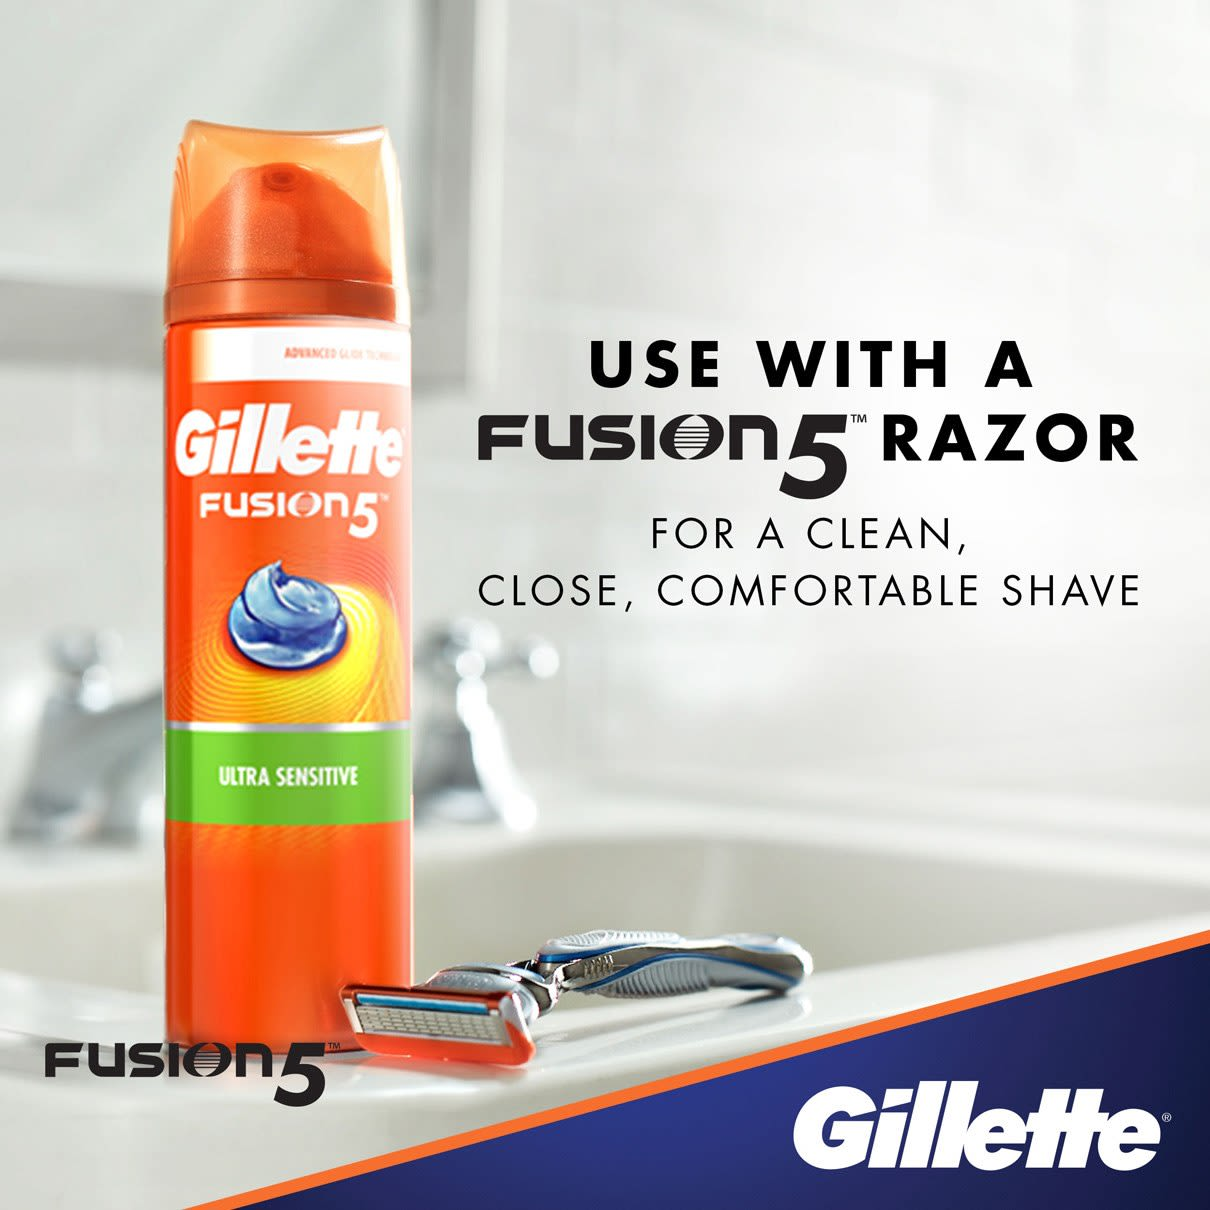 Use with a Fusion5 razor I  Gillette Fusion5 Ultra Sensitive Shave Gel